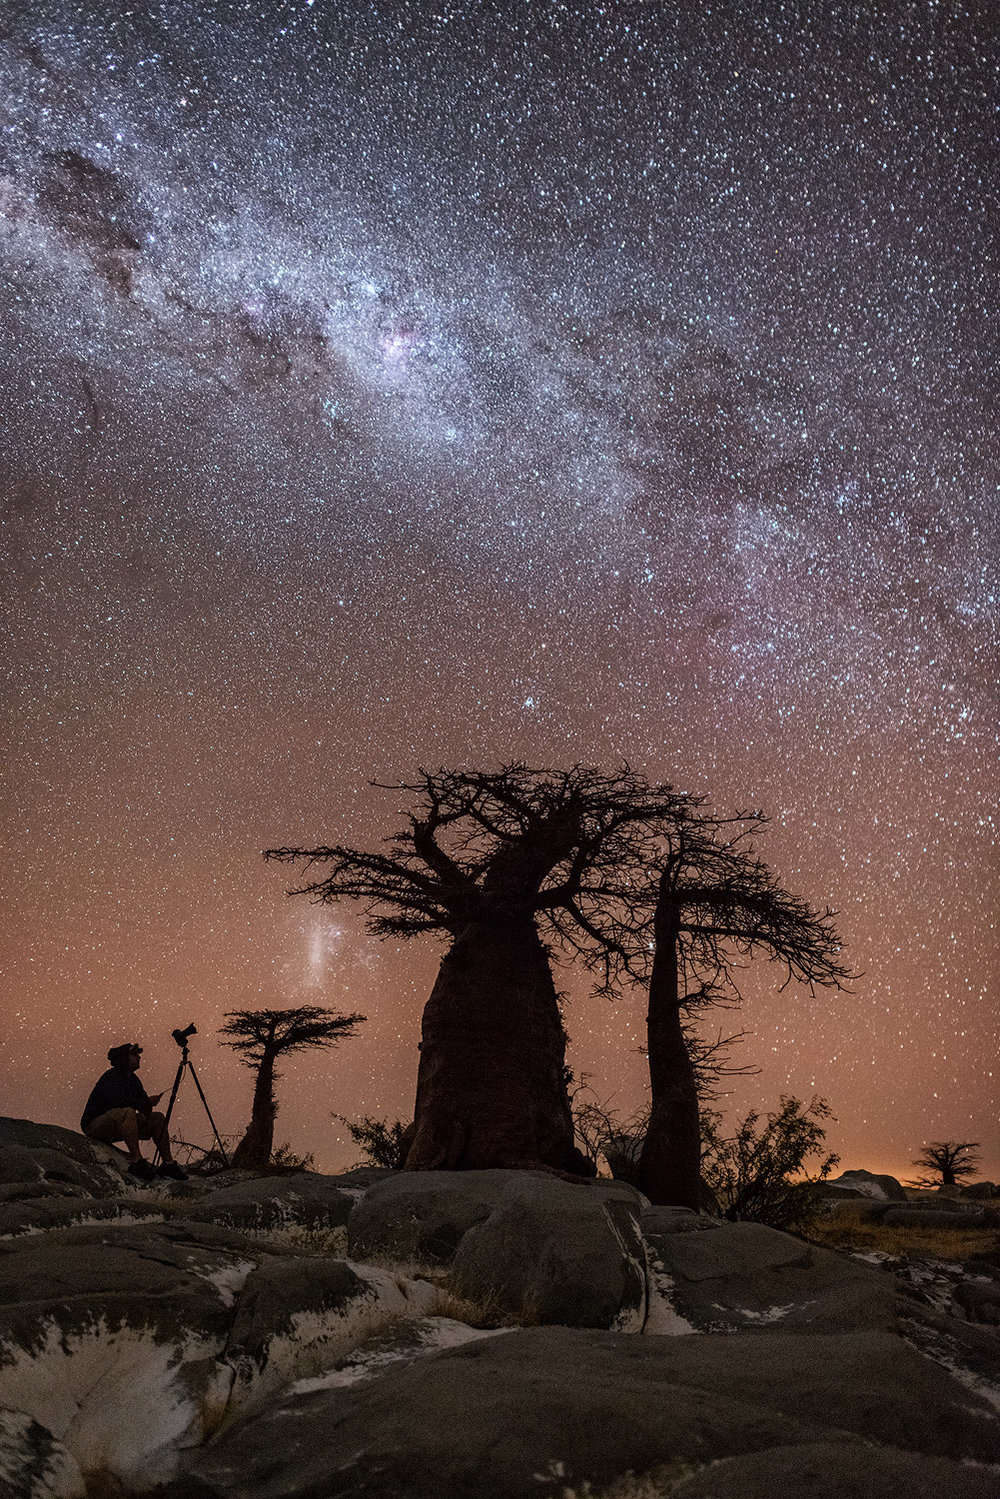 star Milky Way night photography self portrait vertical landscape photo kudu island Makgadikgadi pans Botswana baobab south island